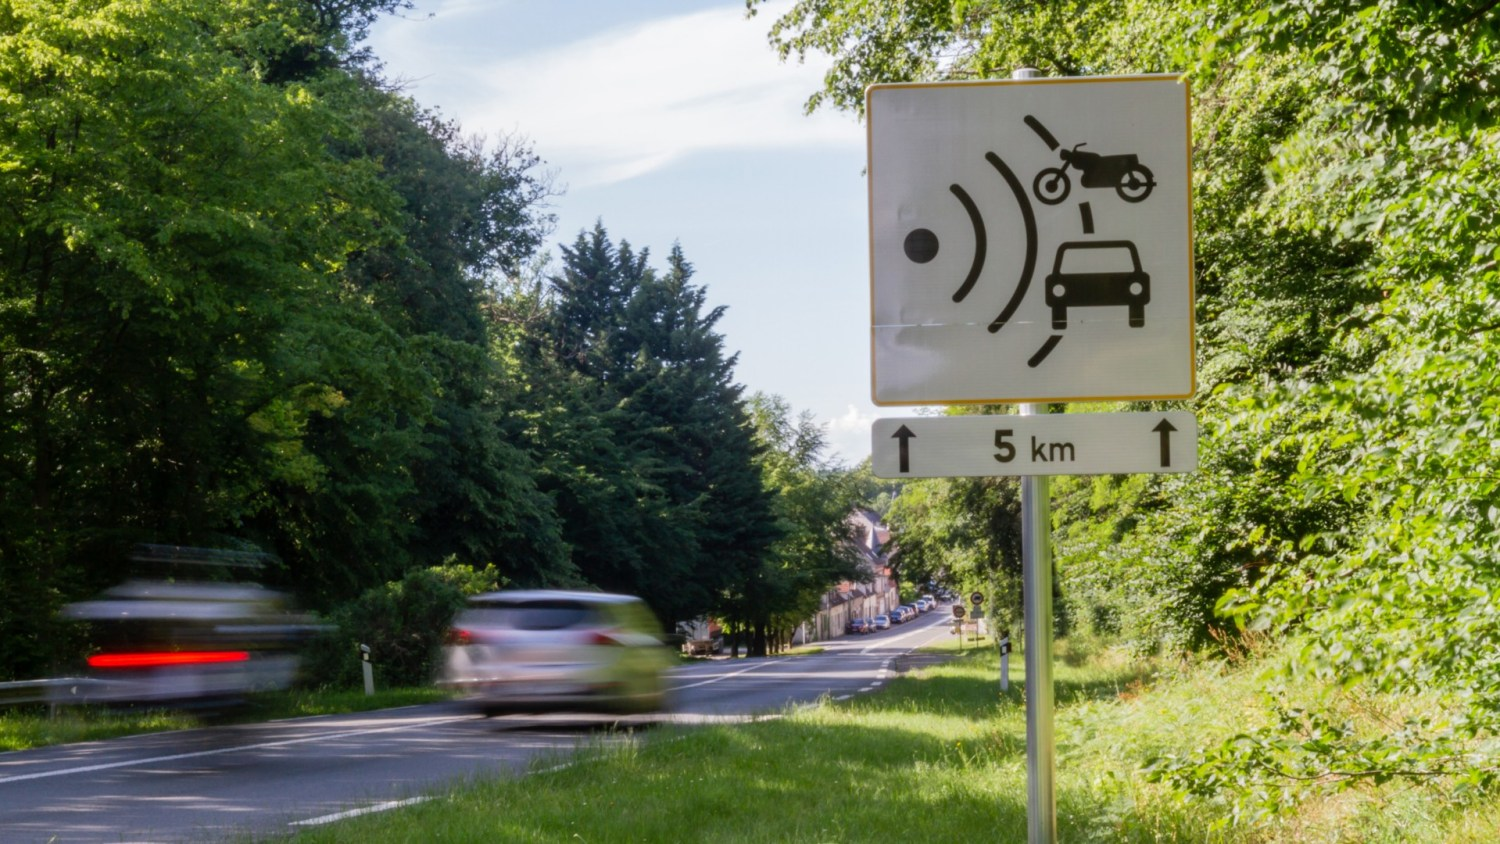 New French cameras and driving rules